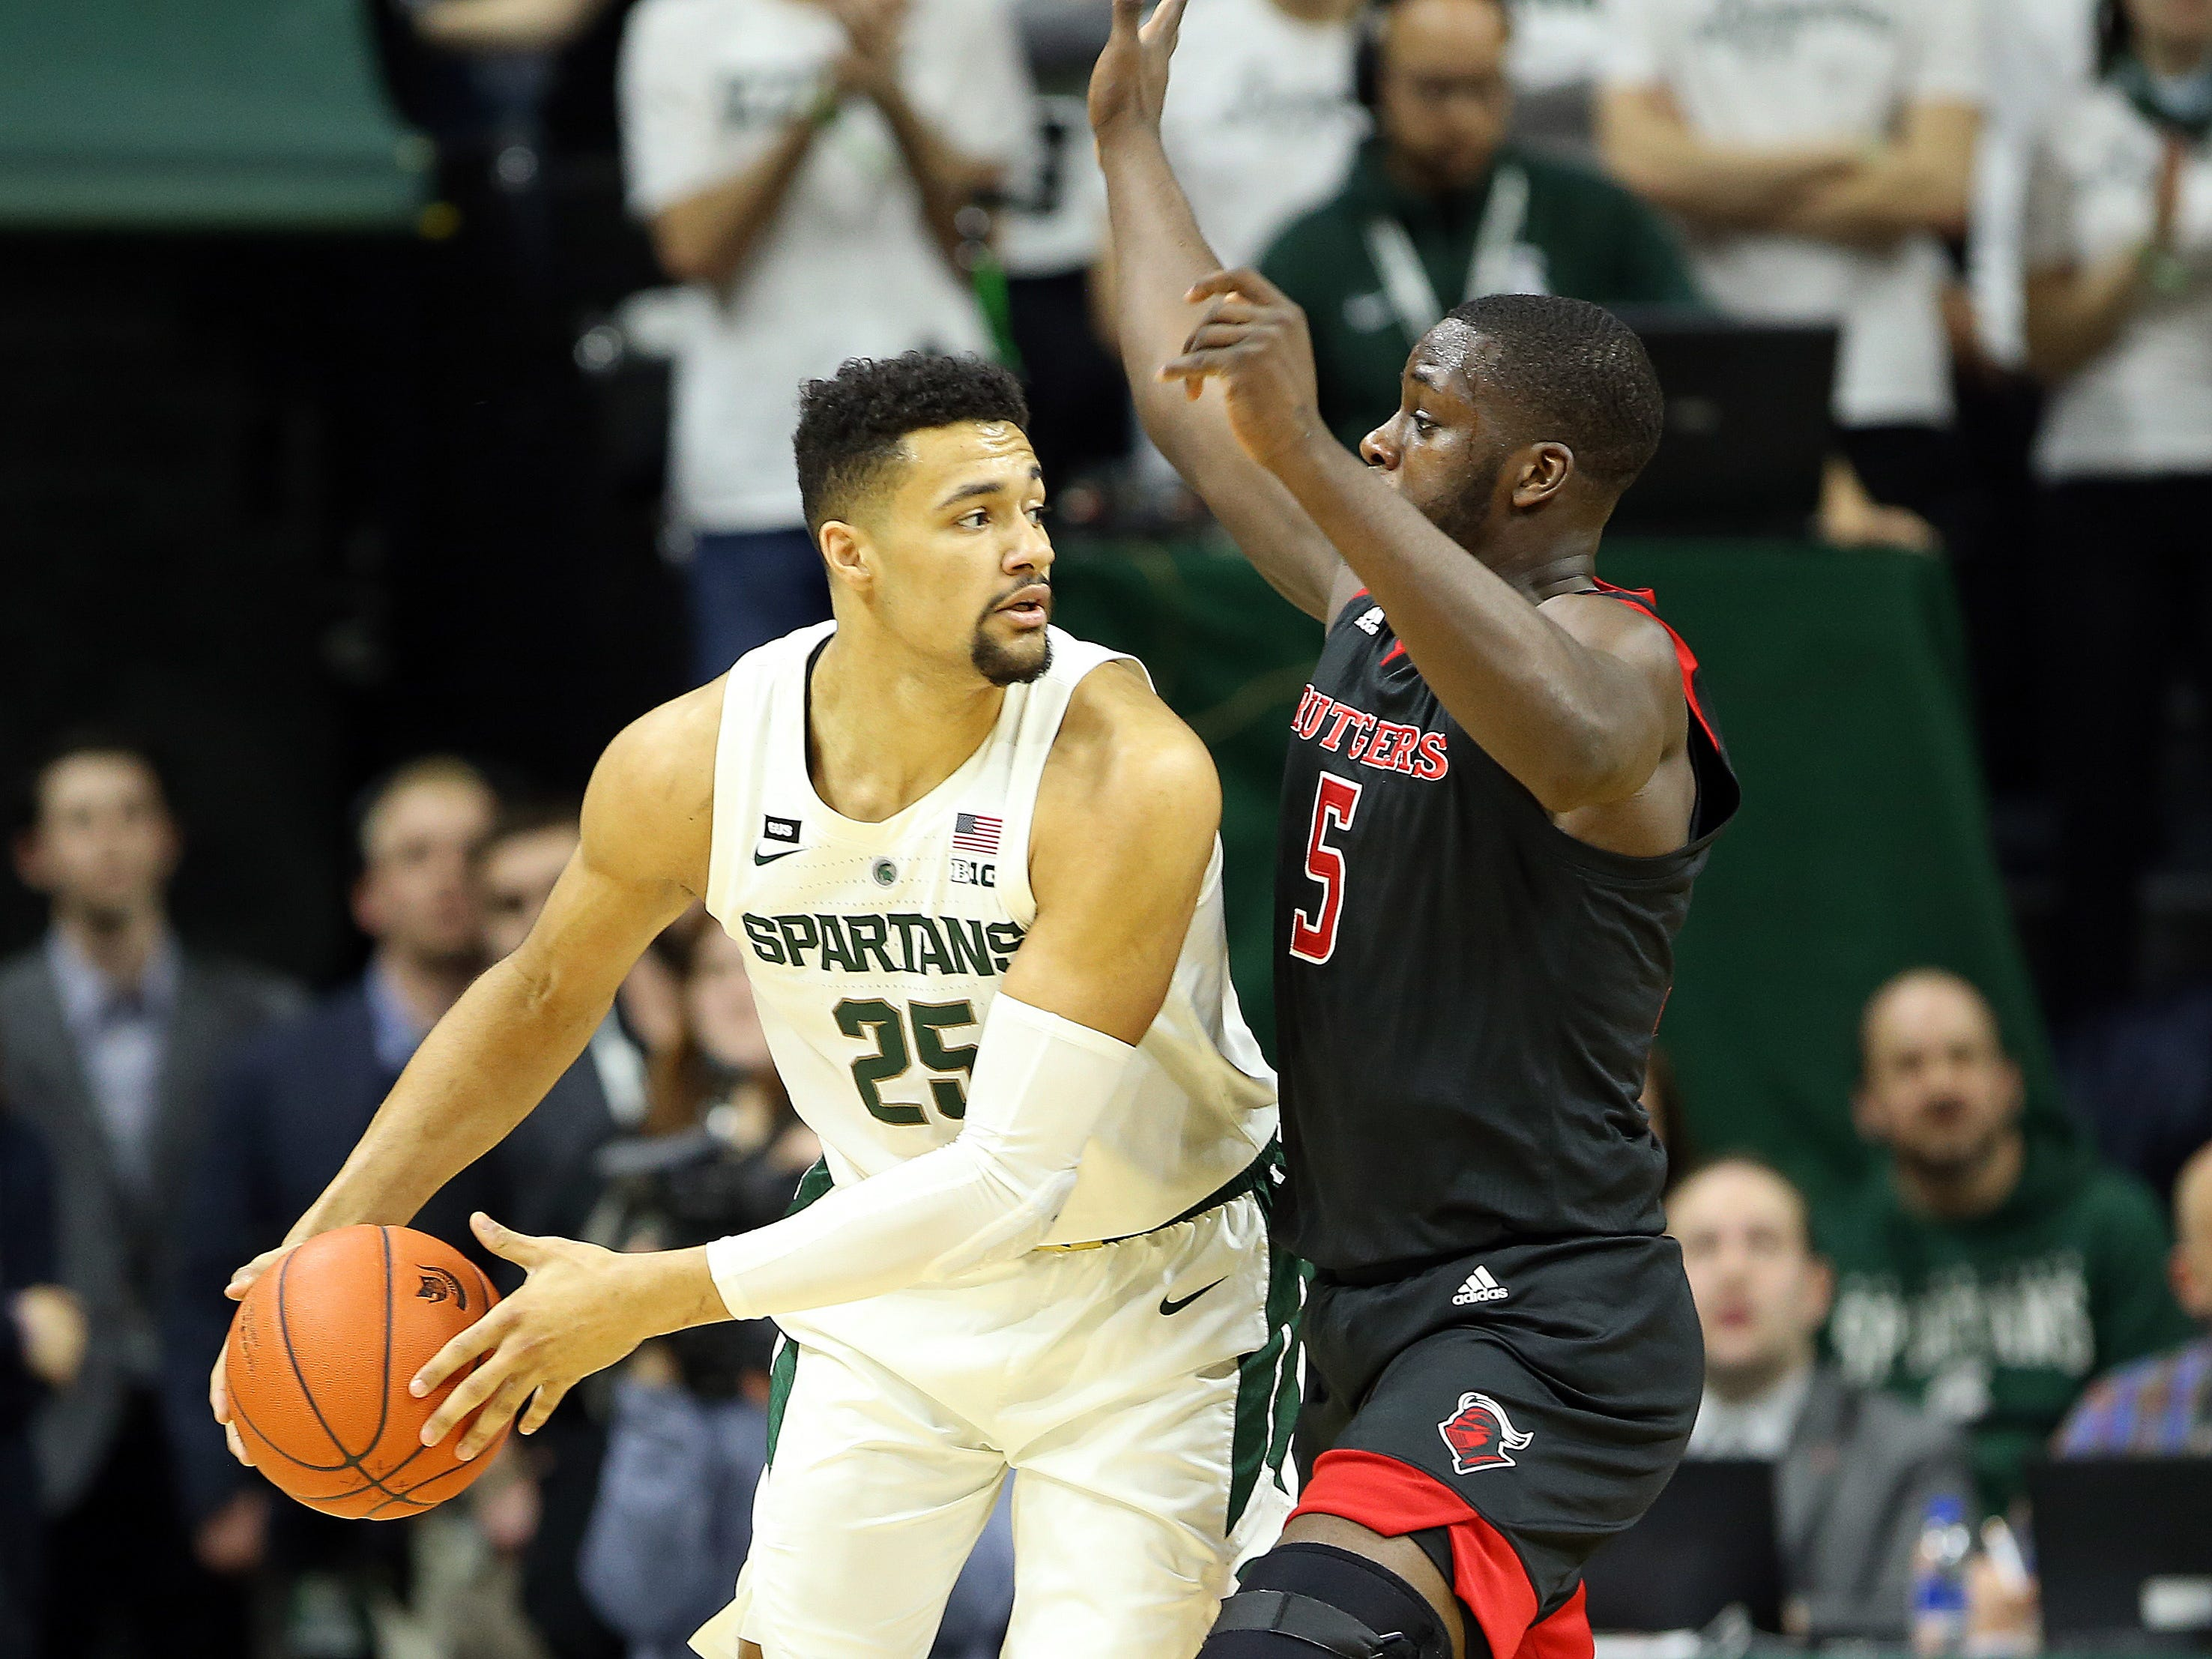 Feb 20, 2019; East Lansing, MI, USA; Michigan State Spartans forward Kenny Goins (25) is defended by Rutgers Scarlet Knights forward Eugene Omoruyi (5) during the first half of a game at the Breslin Center.